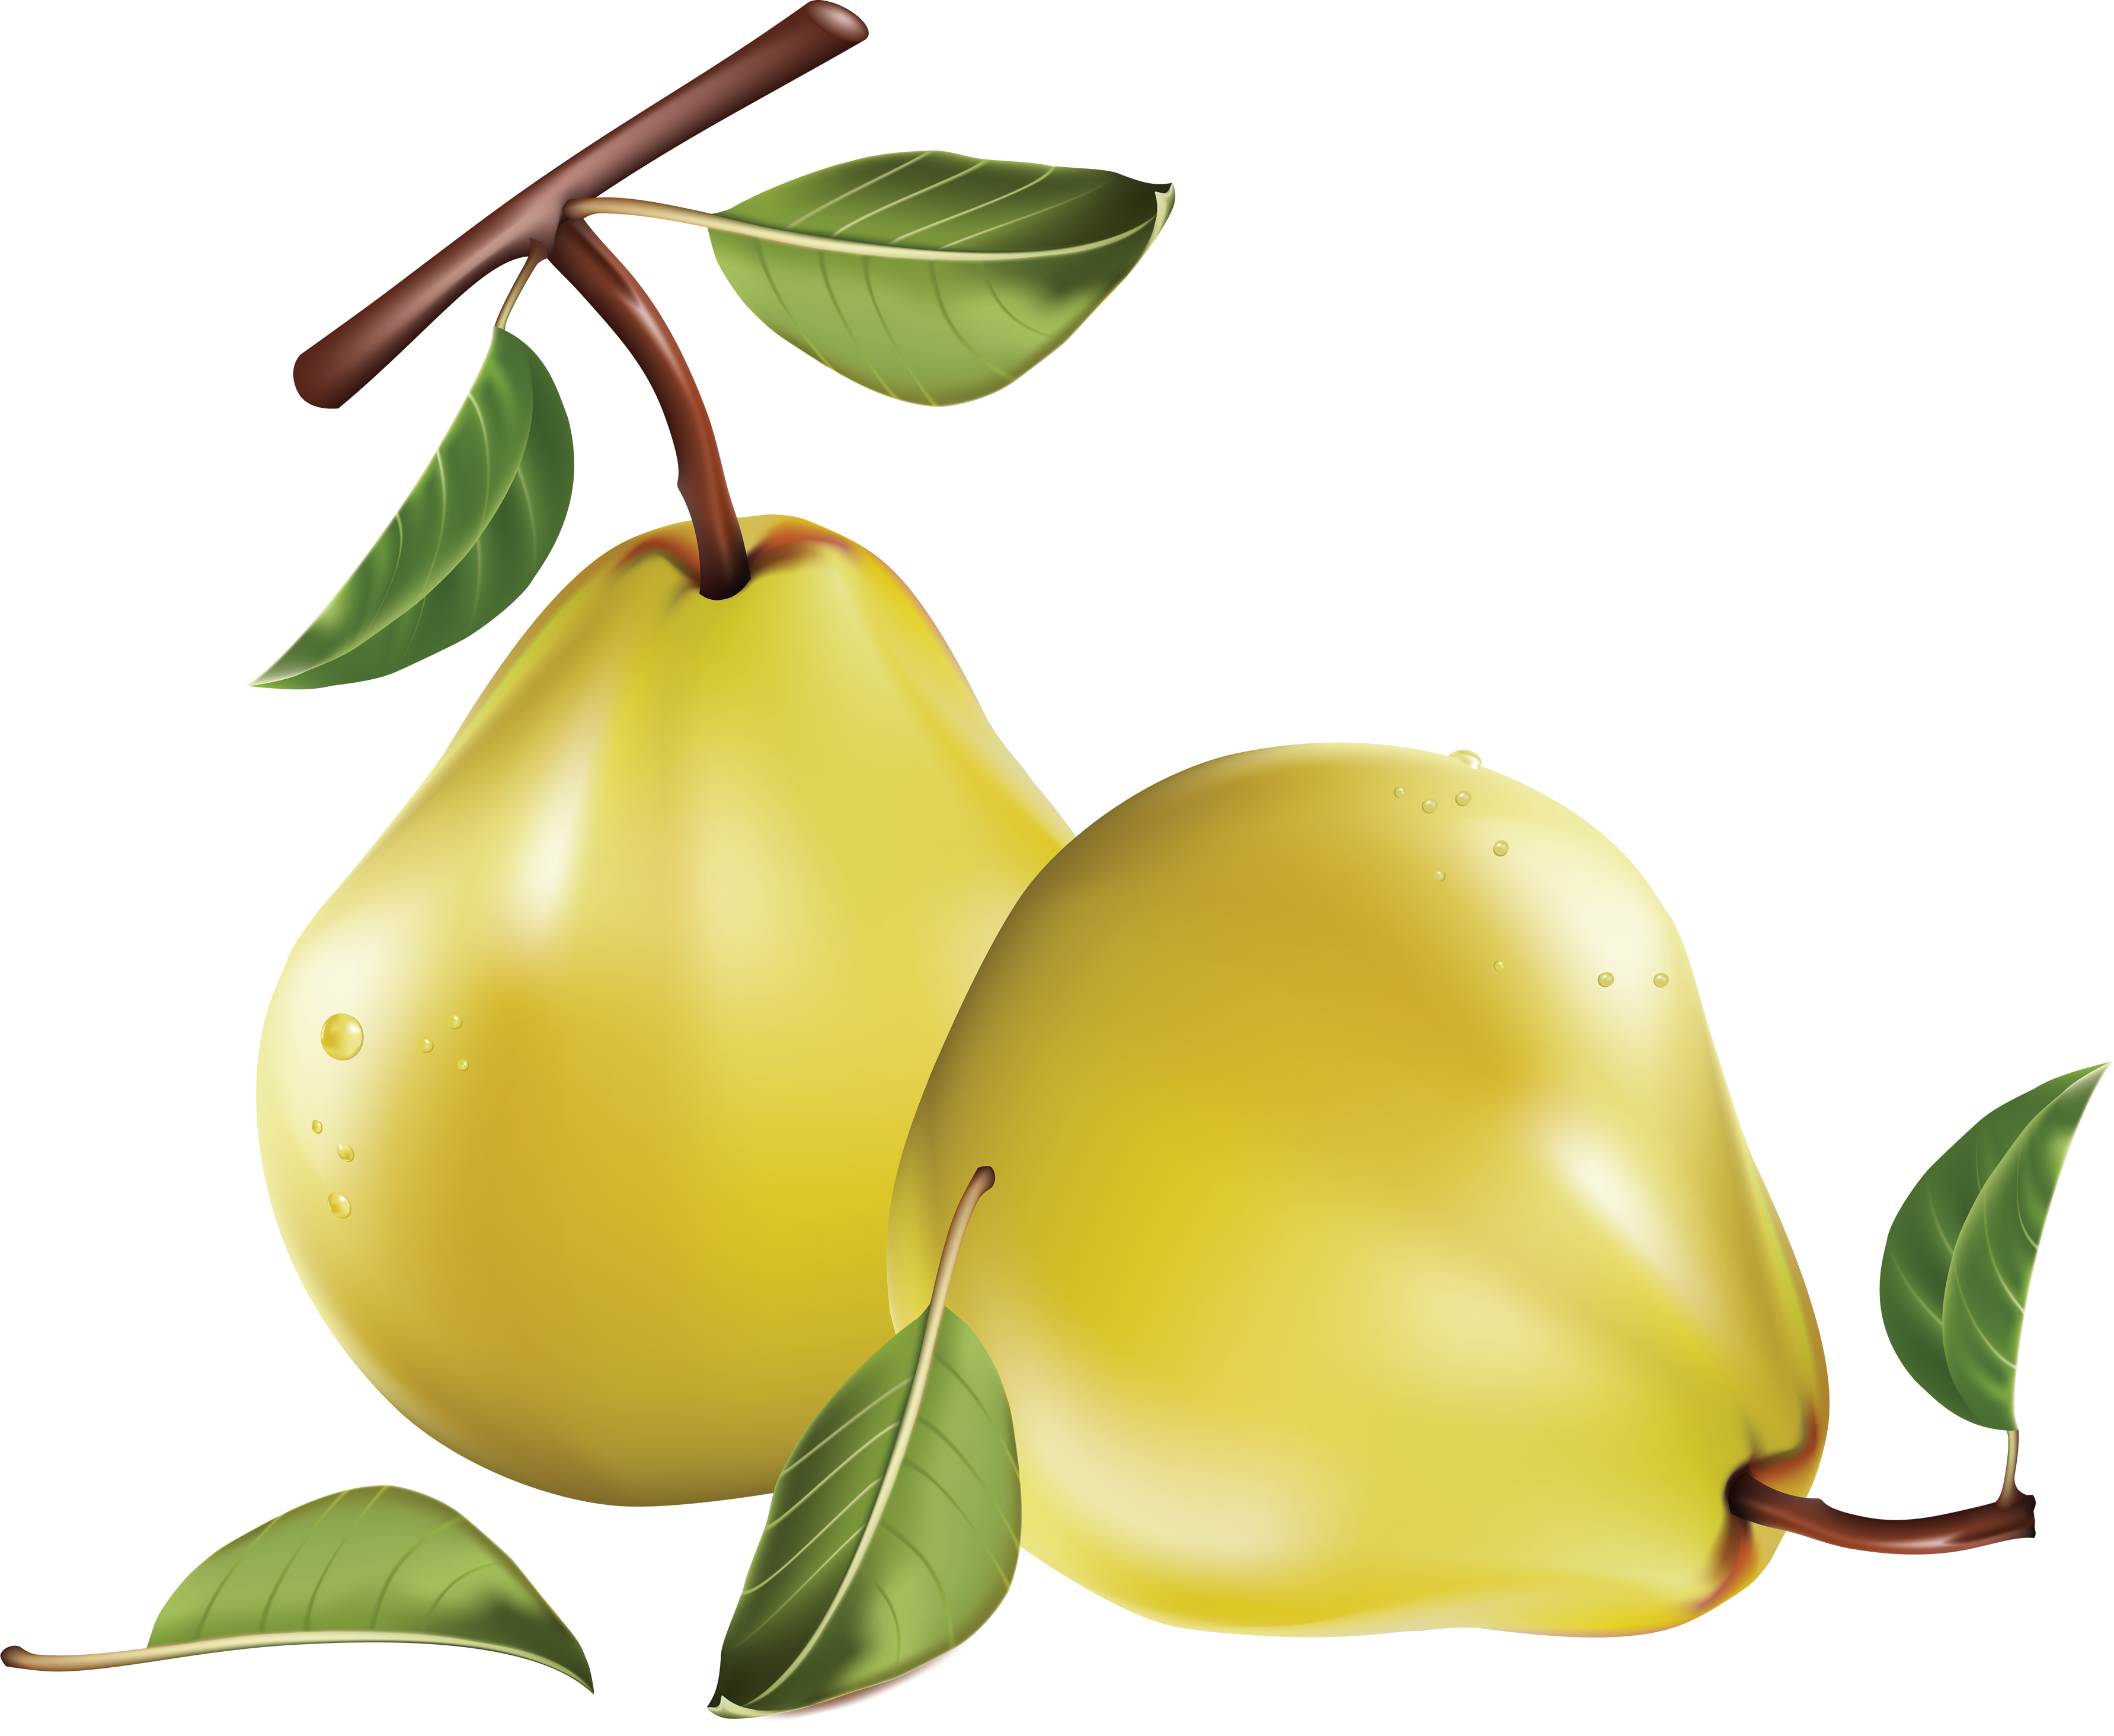 Png images free download. Pear clipart transparent background